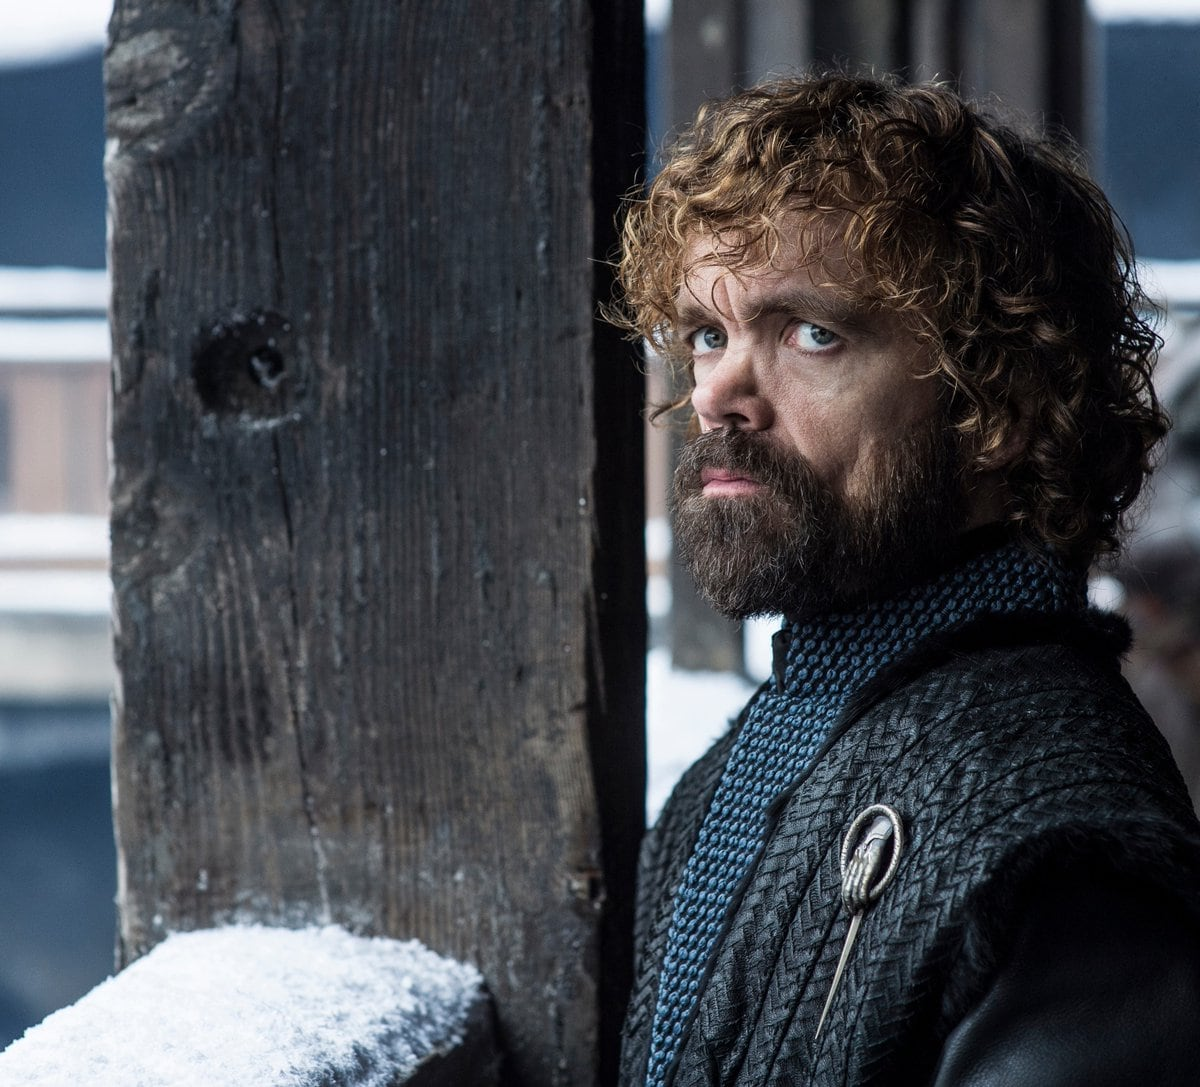 Tyrion Lannister (Peter Dinklage Tyrion) became Game of Thrones with the signature Lannister blonde hair – an important plot part which the writers upheld by bleaching his locks… in season one. His expression of dread is still the same though even in Season eight.